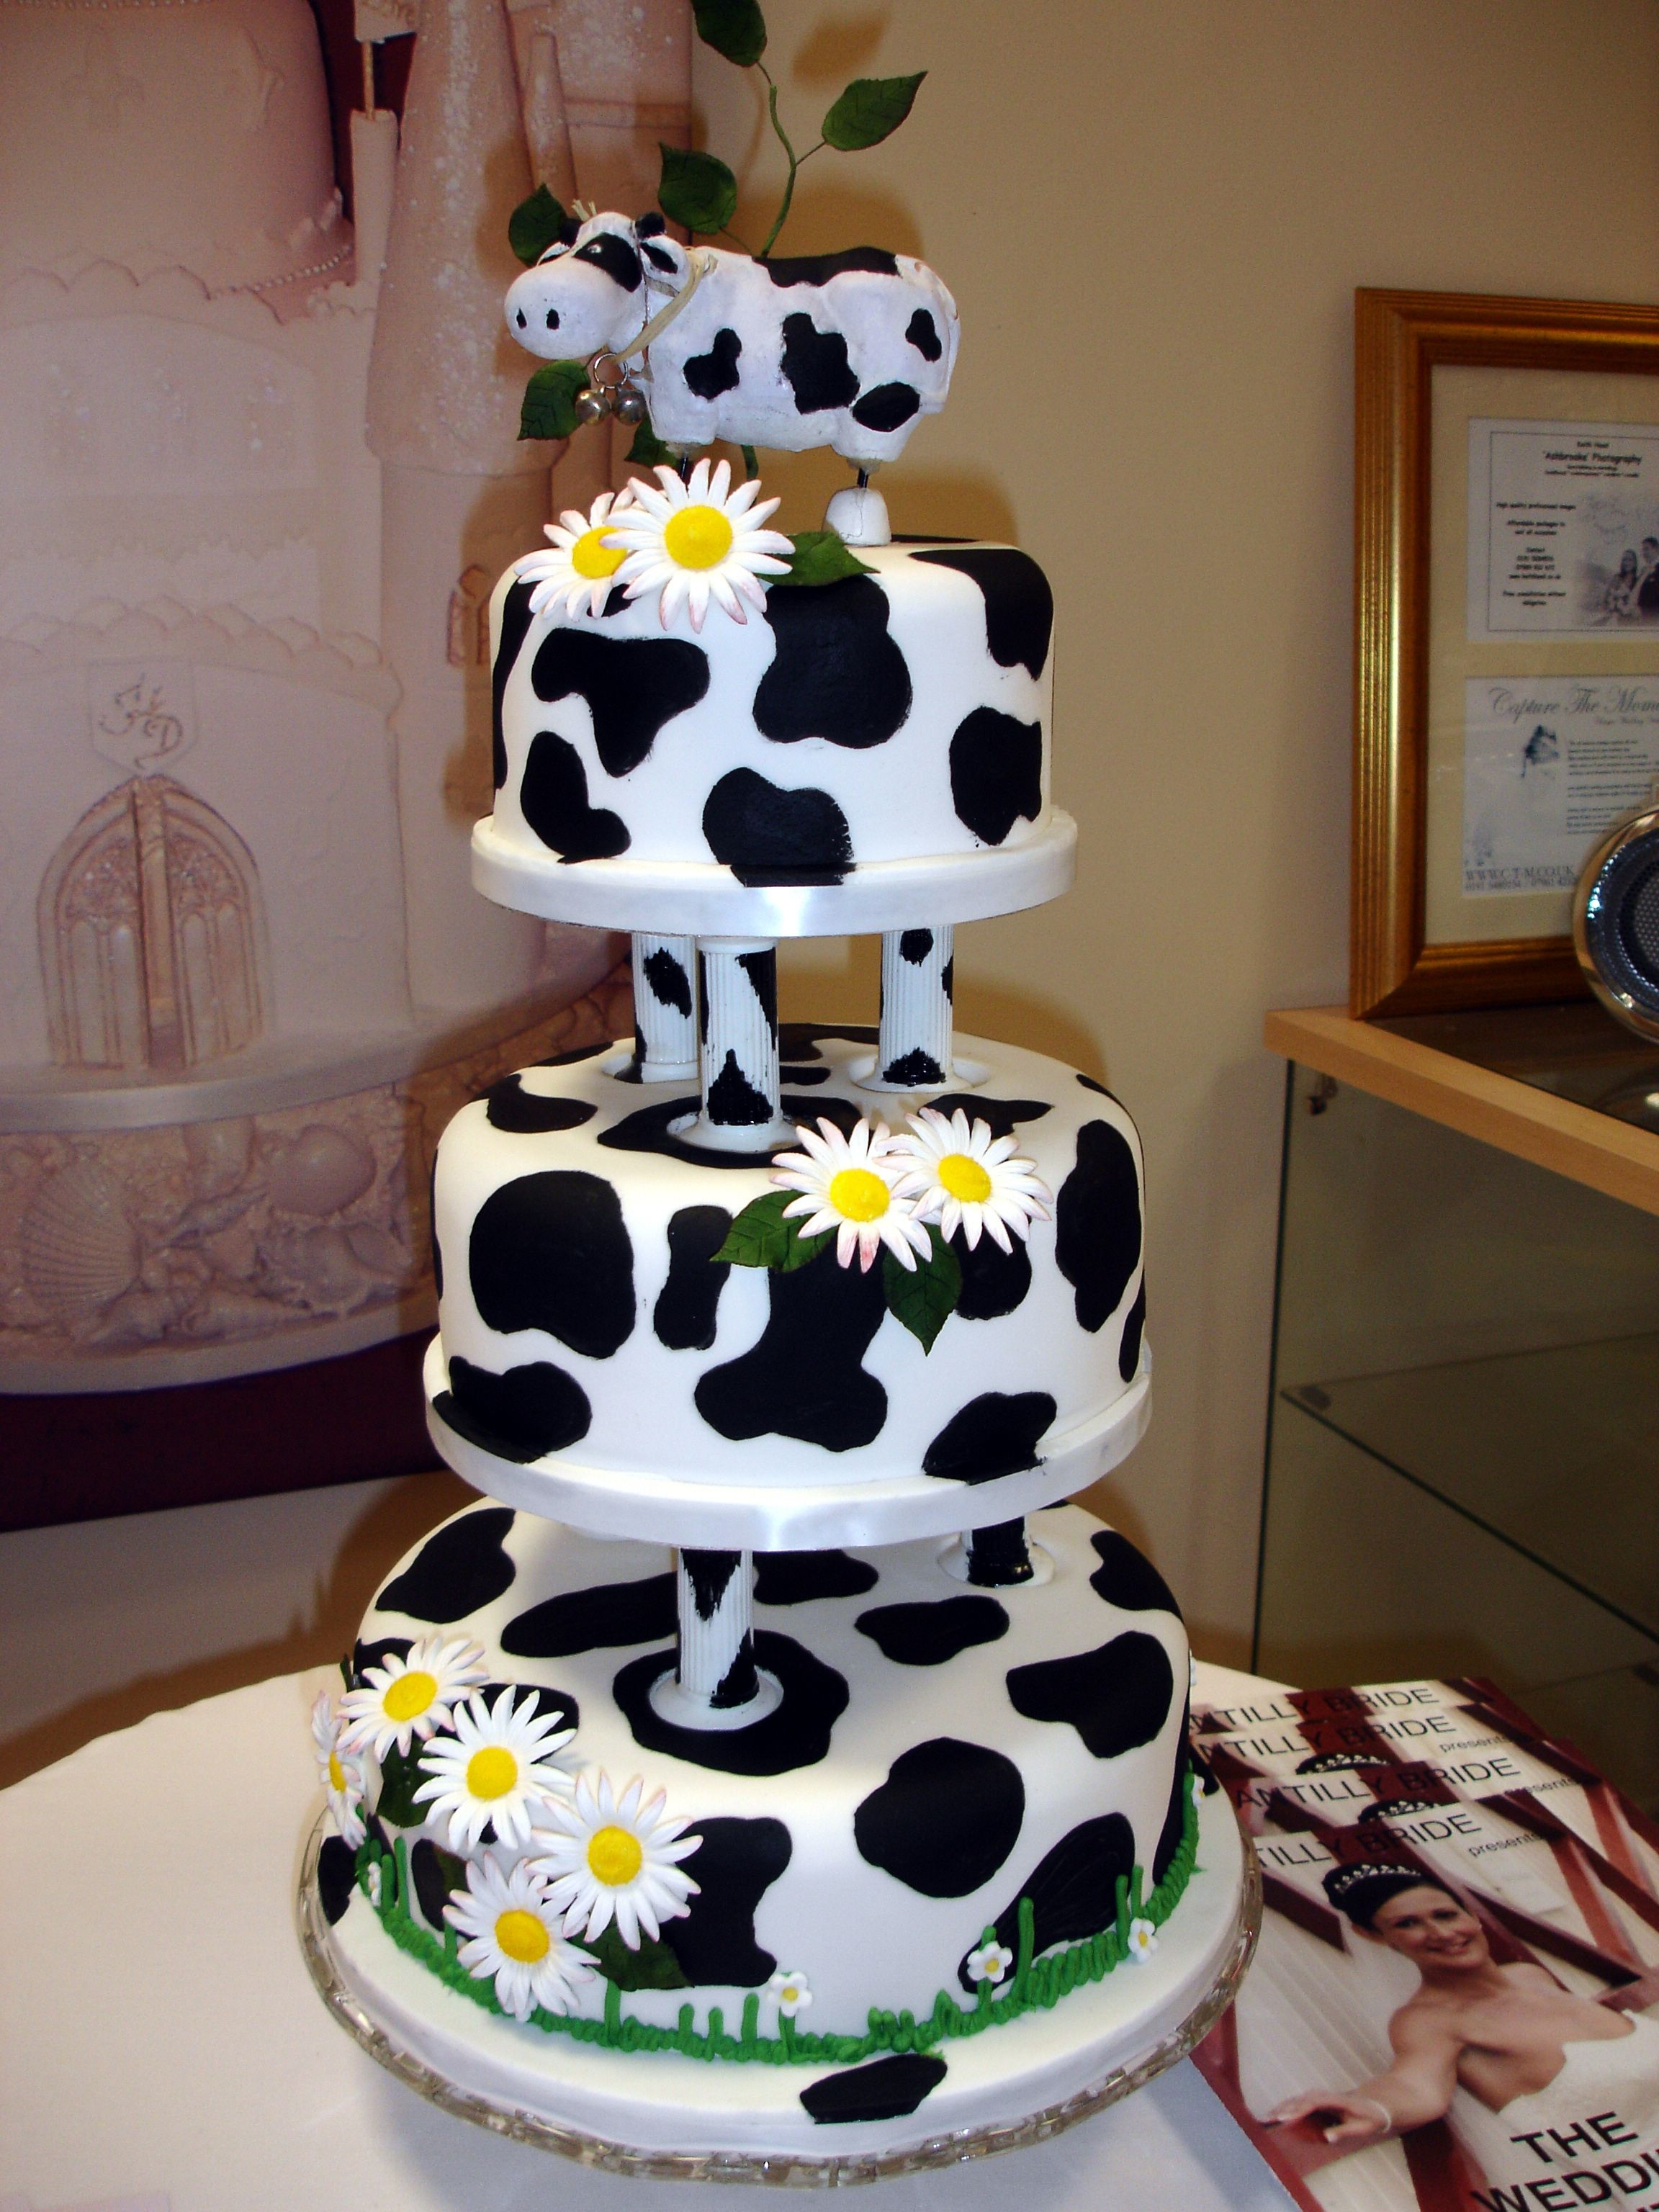 Cow Print Wedding Cake Desserts Pinterest Cow Print Cow And